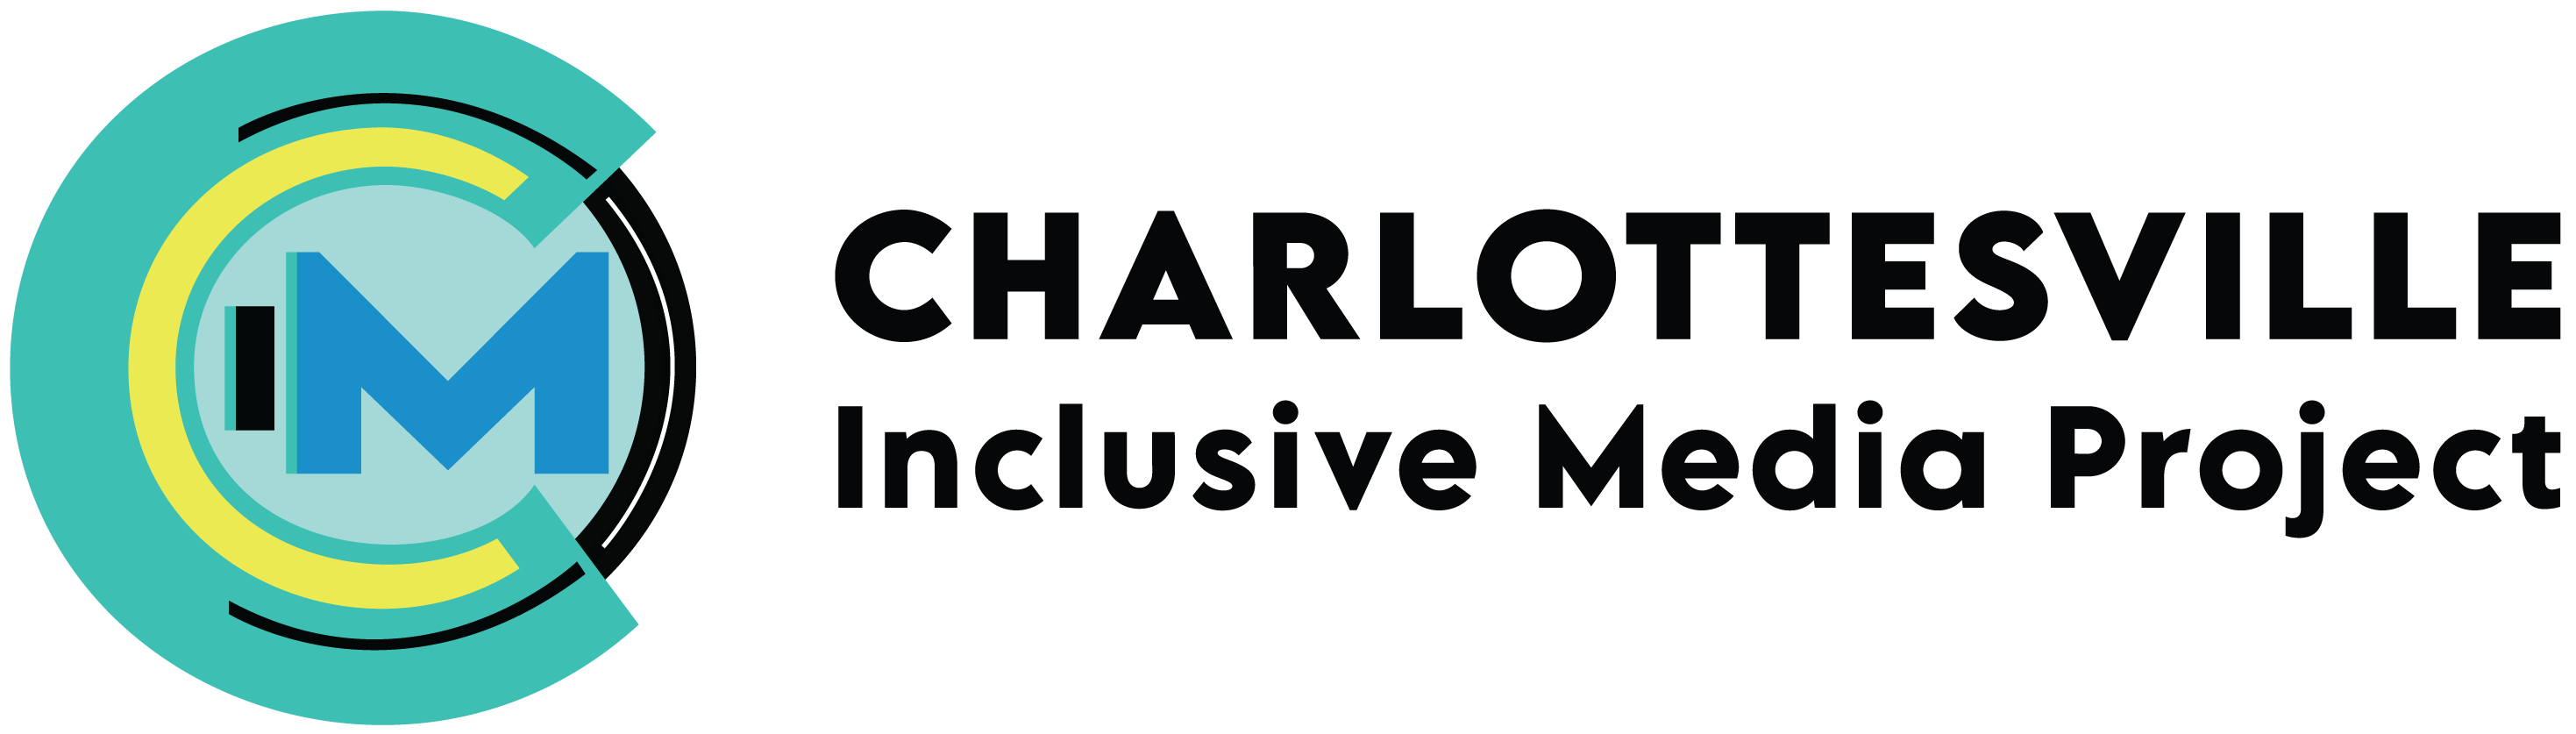 Charlottesville Inclusive Media Project logo